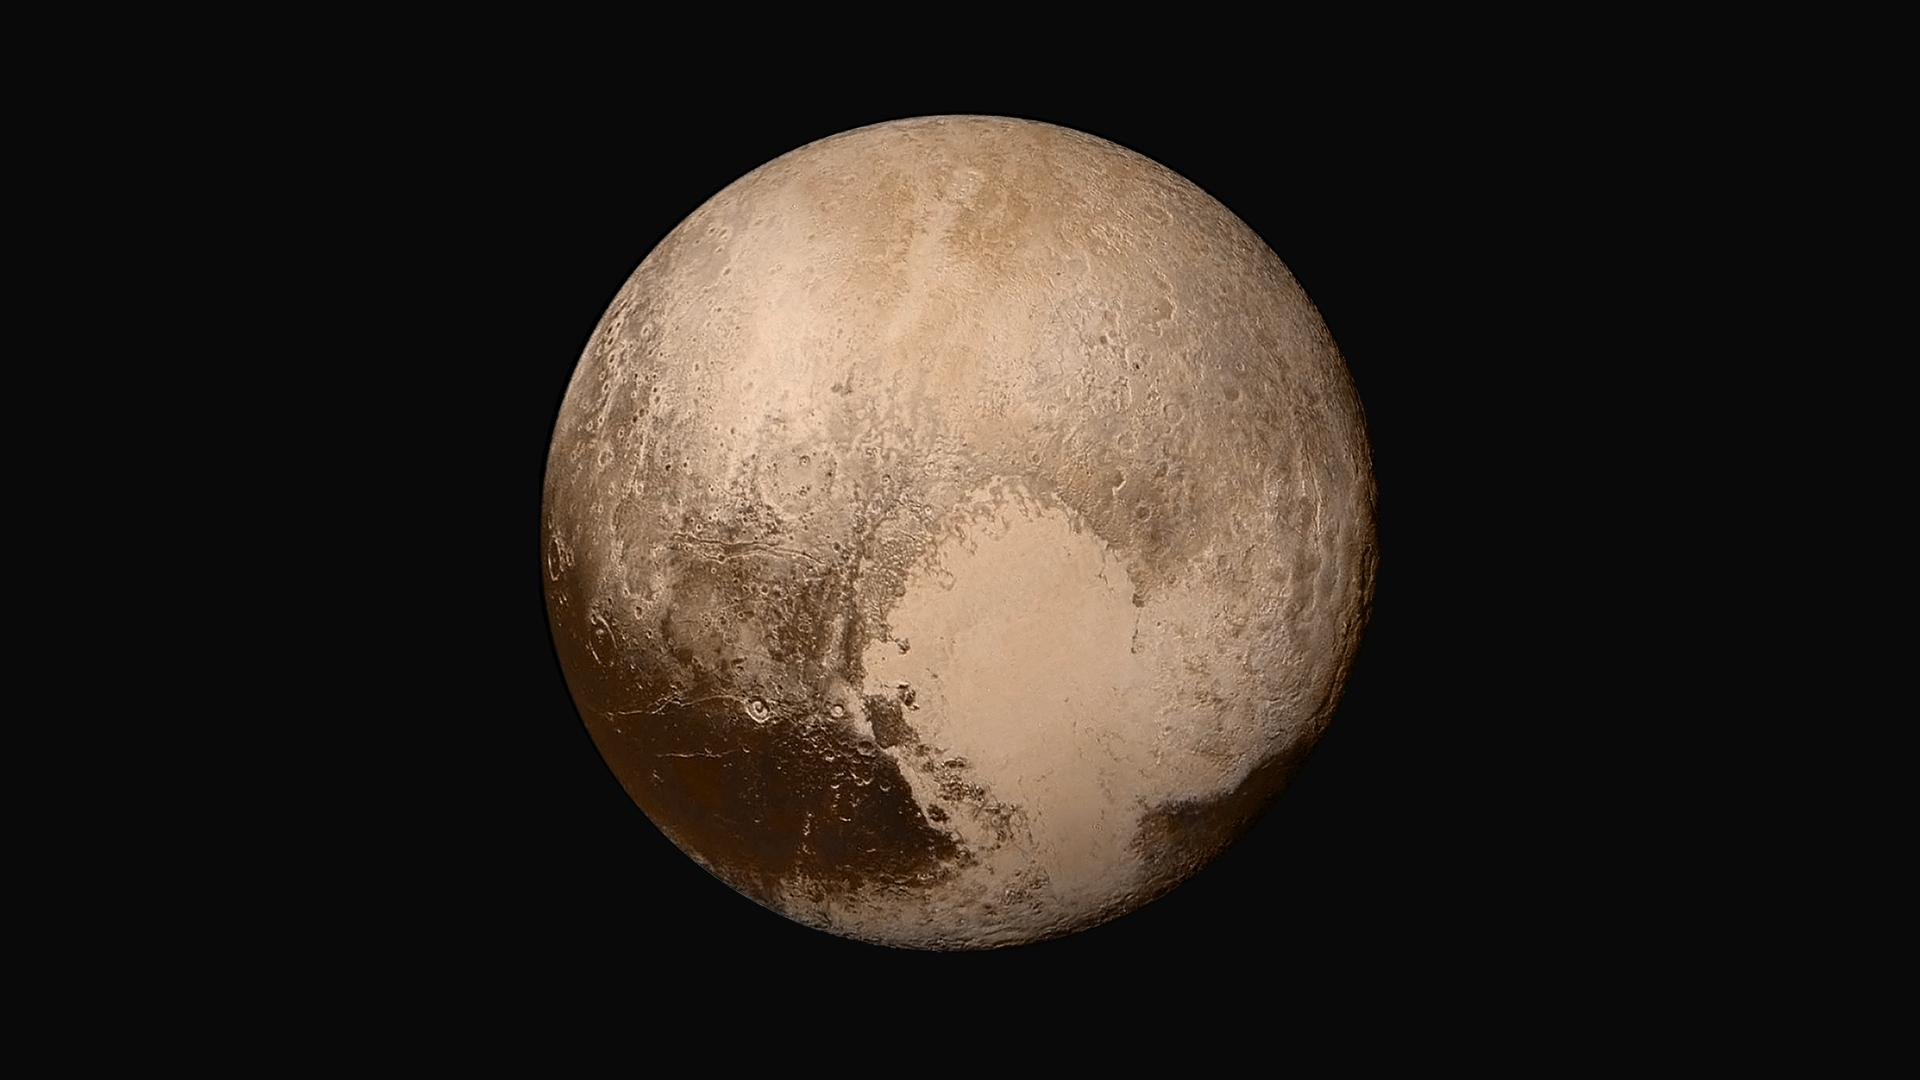 Four images from NASA's New Horizons' Long Range Reconnaissance Imager (LORRI) were combined with color data from the Ralph instrument to create this global view of Pluto.